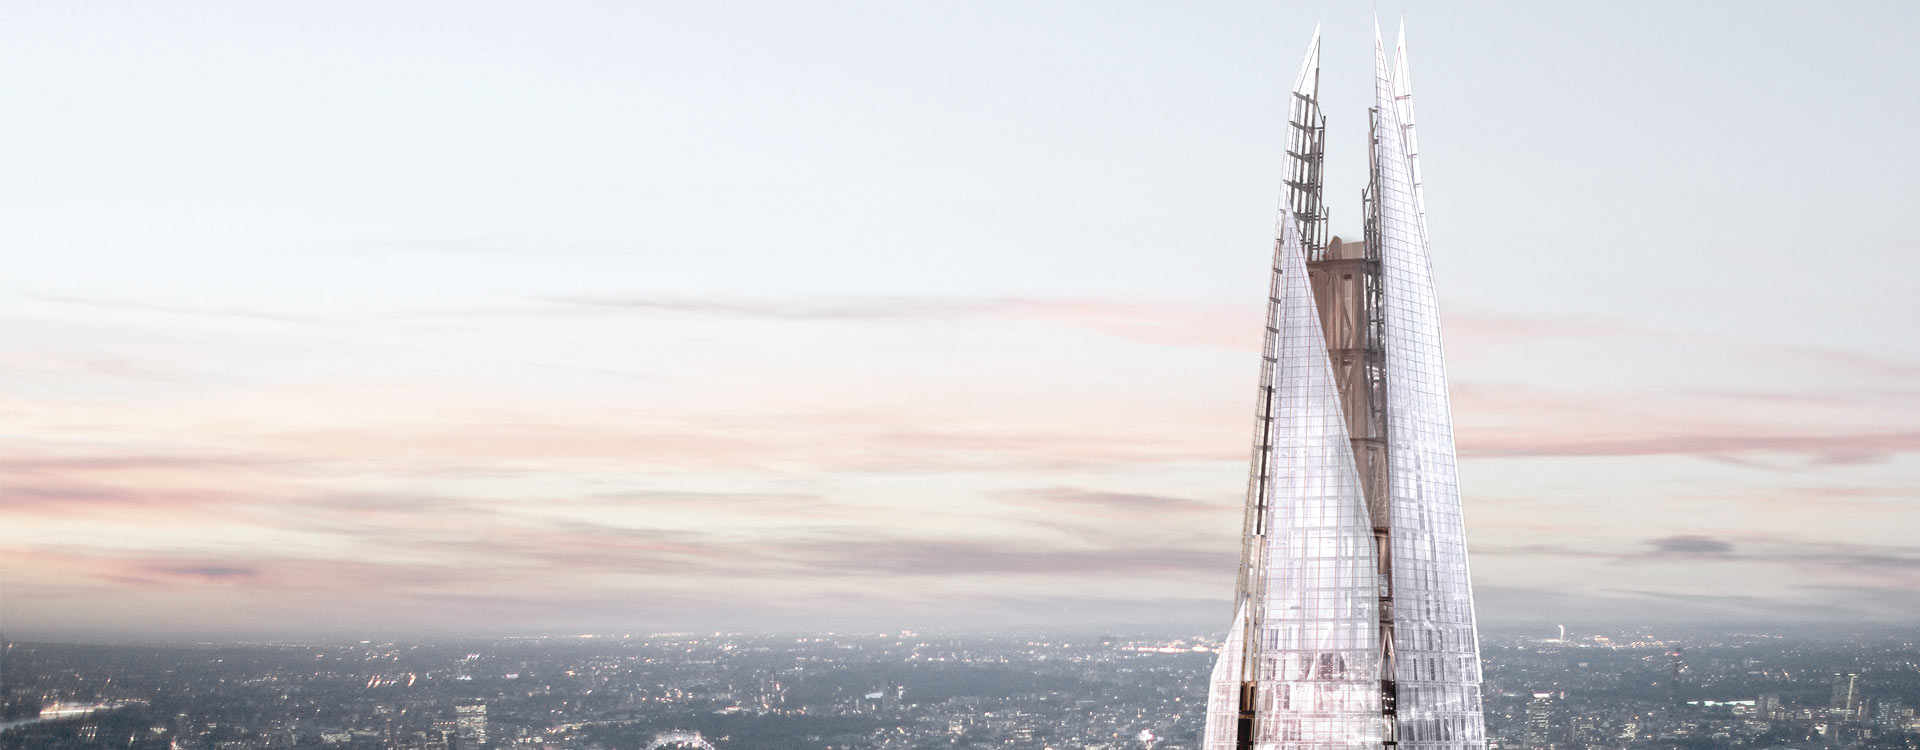 bnr-The-Shard-High-Rise